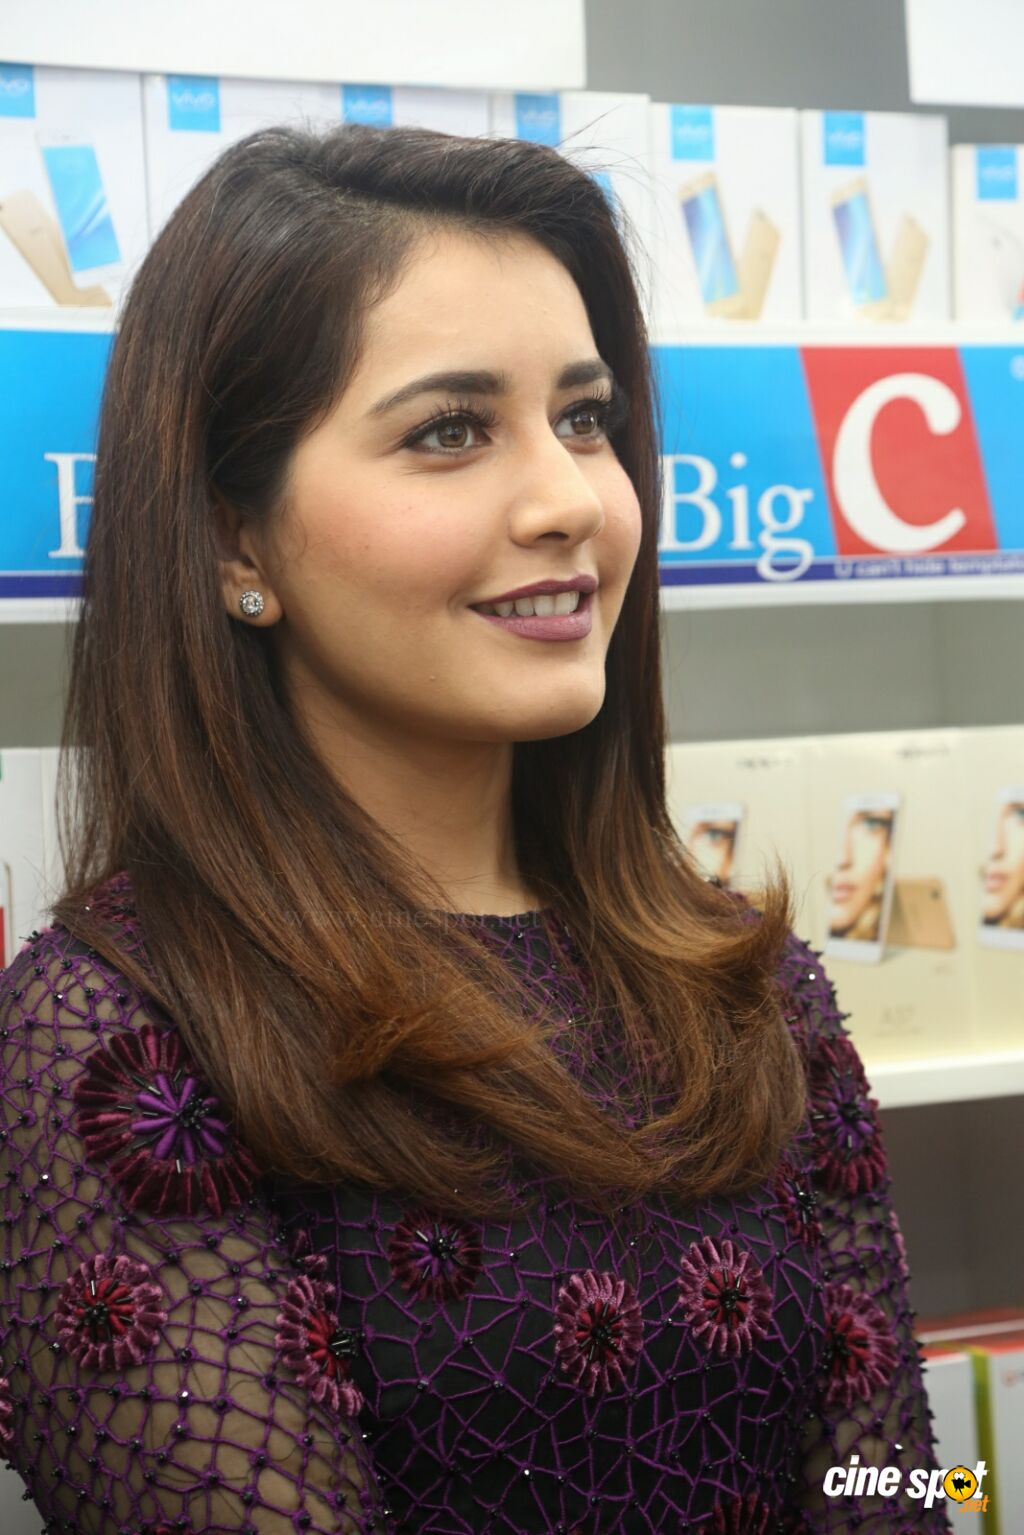 Raashi Khanna Launches Big C Mobile Store (24)